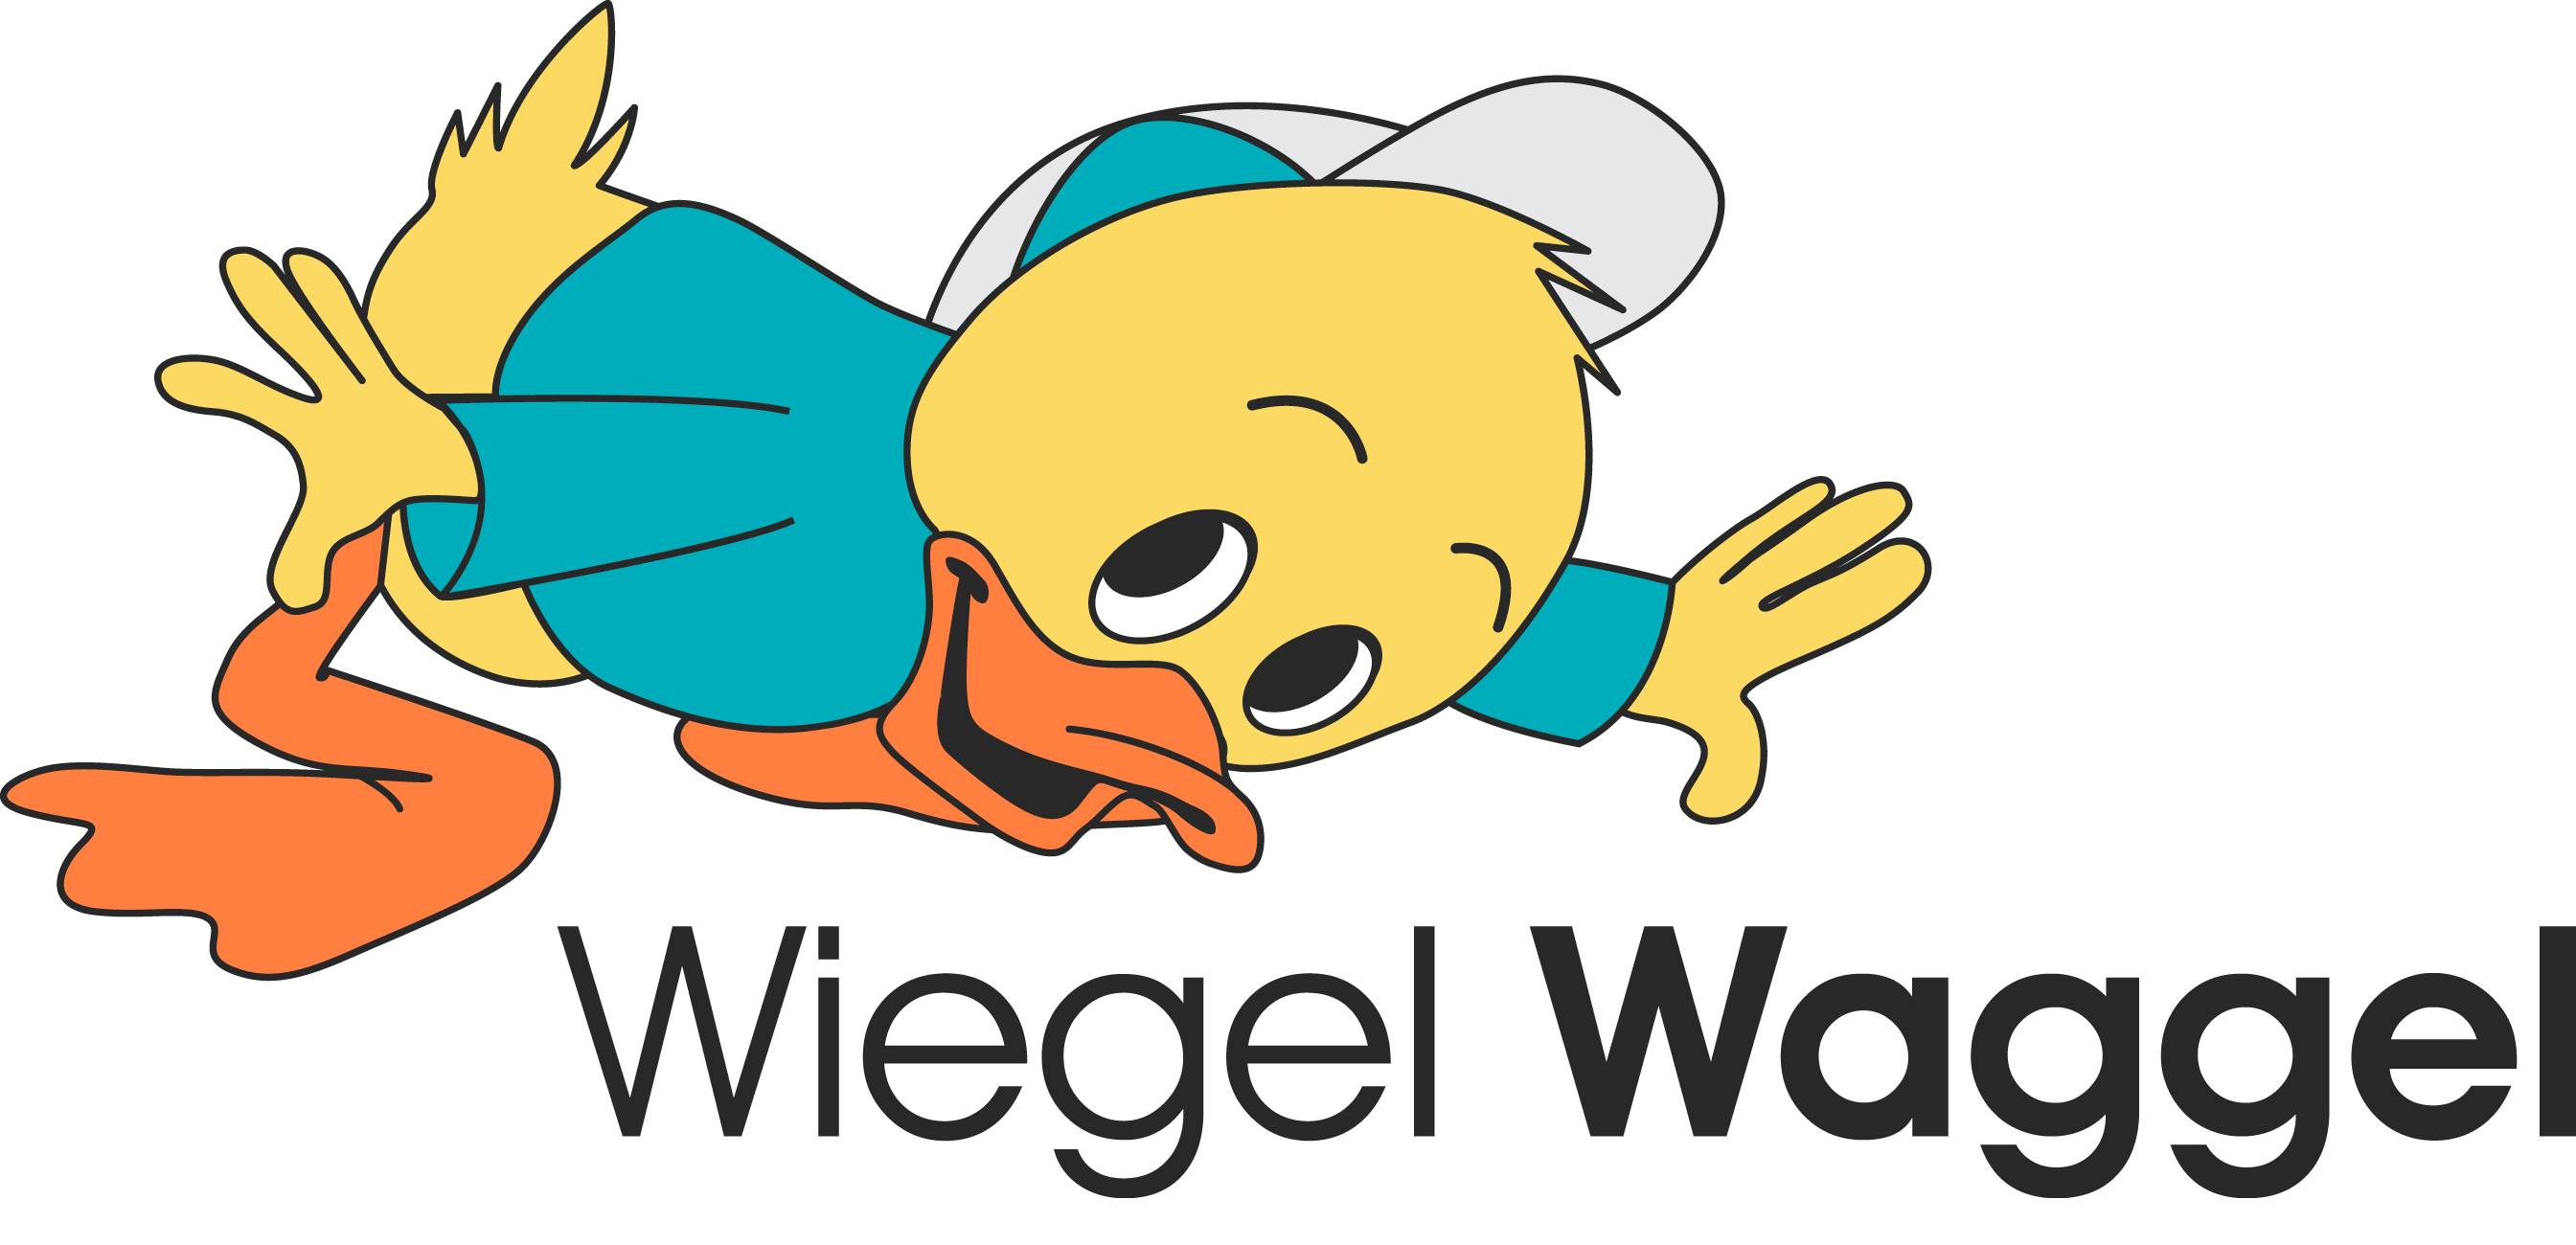 Wiegel Waggel Kleuterskool - Baby and Nursery School